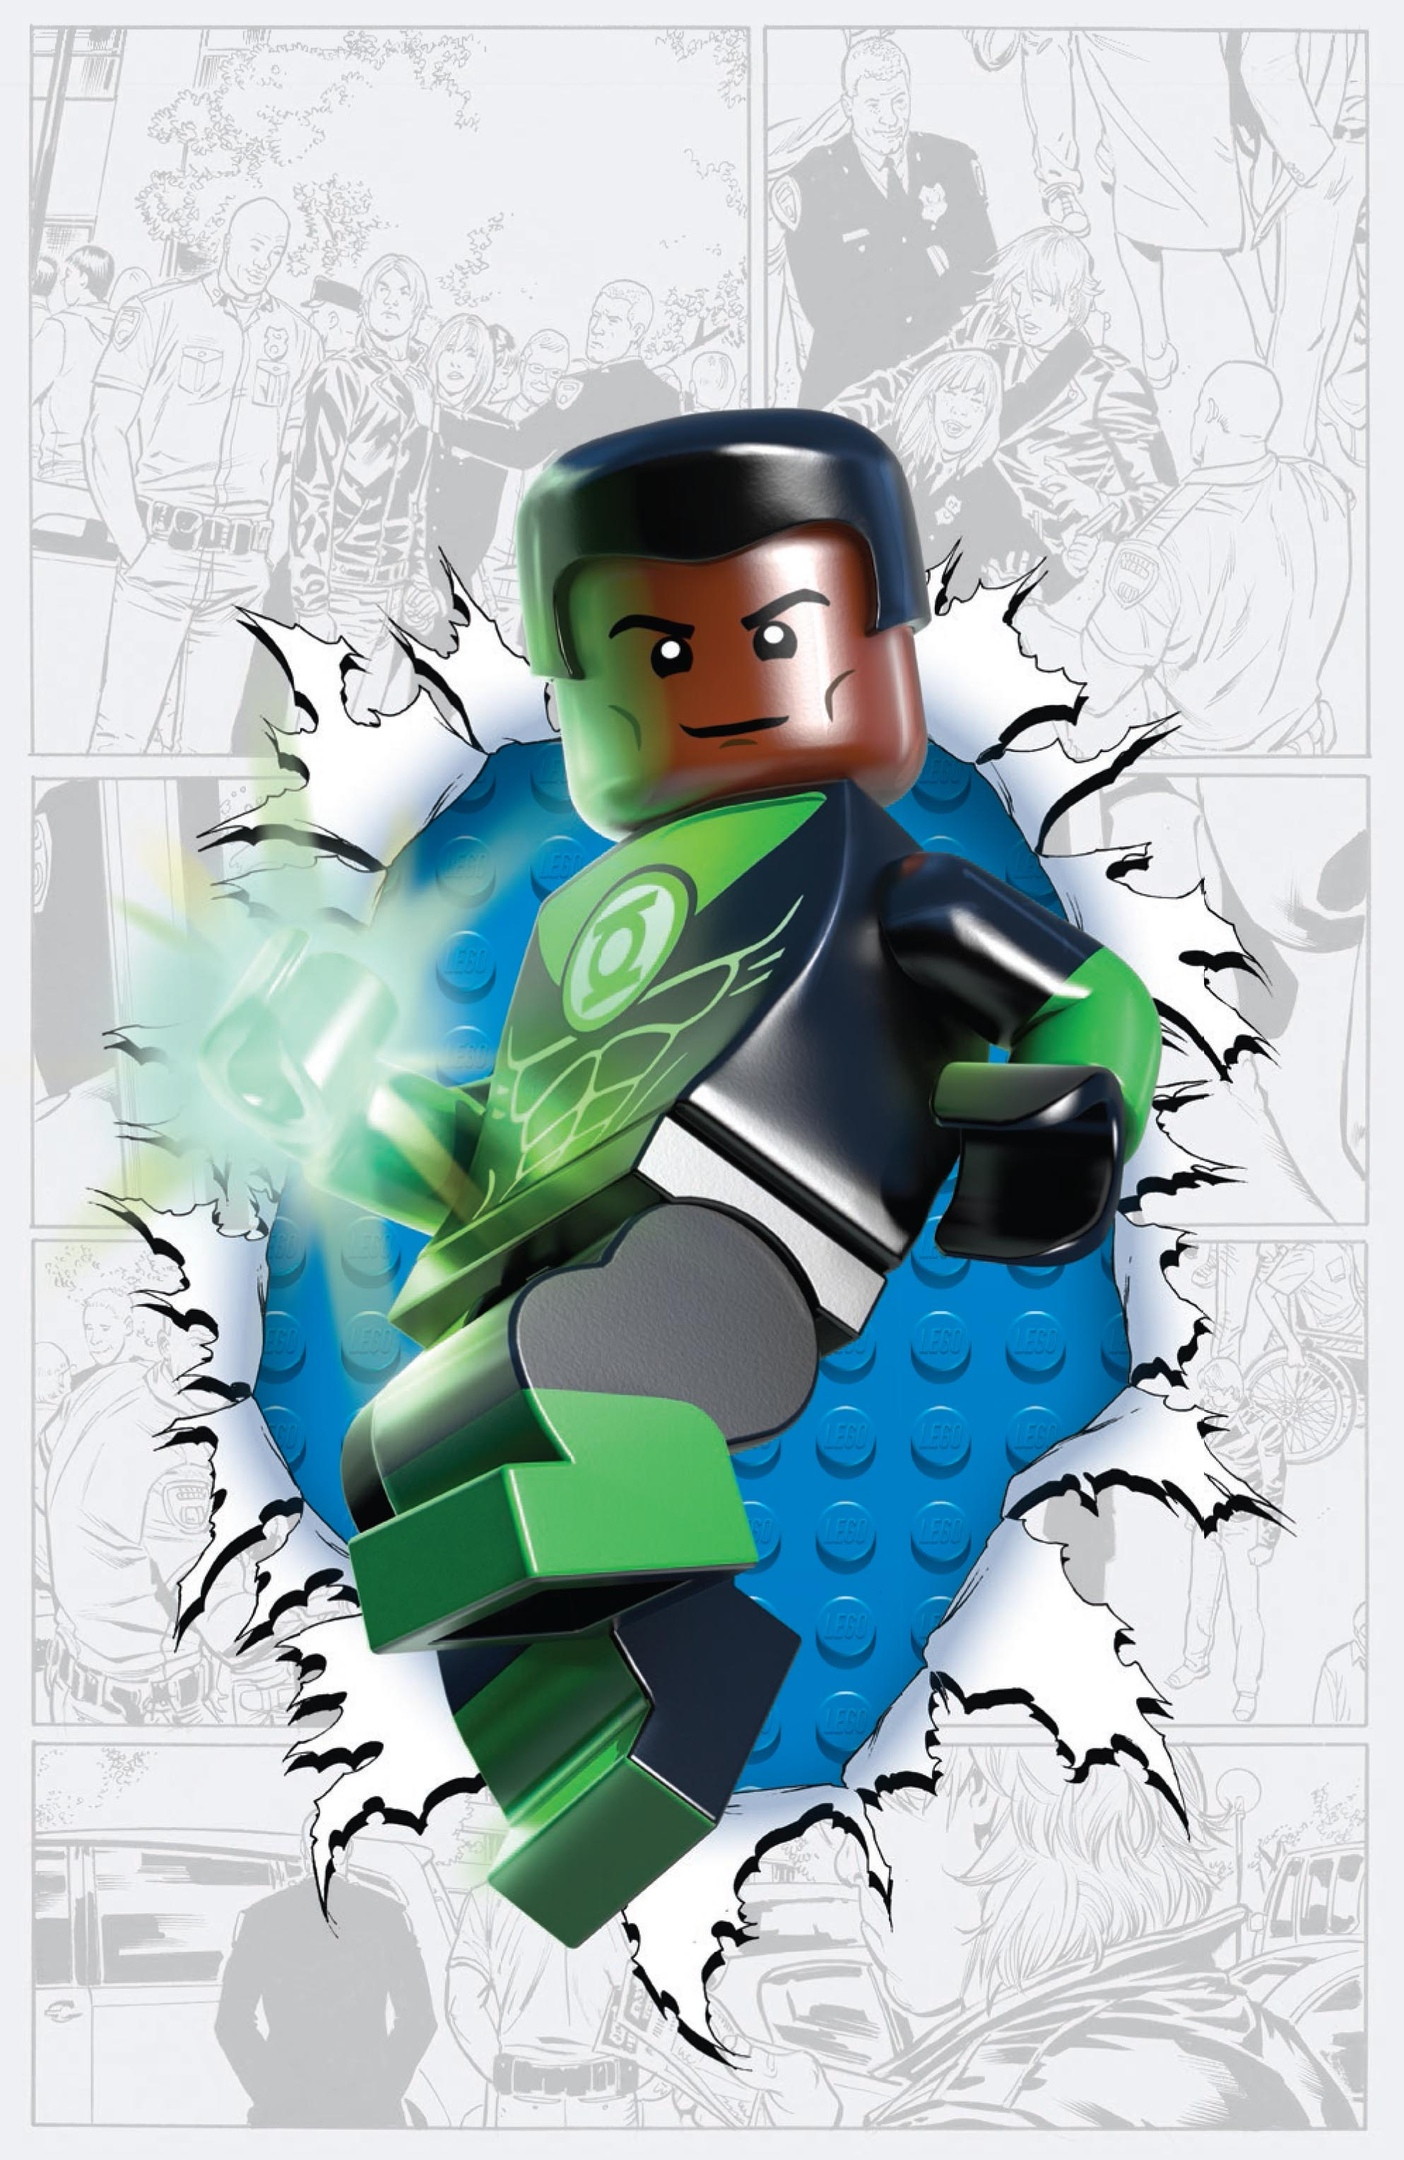 Green Lantern Corps Vol 3 36 Textless Lego Variant.jpg